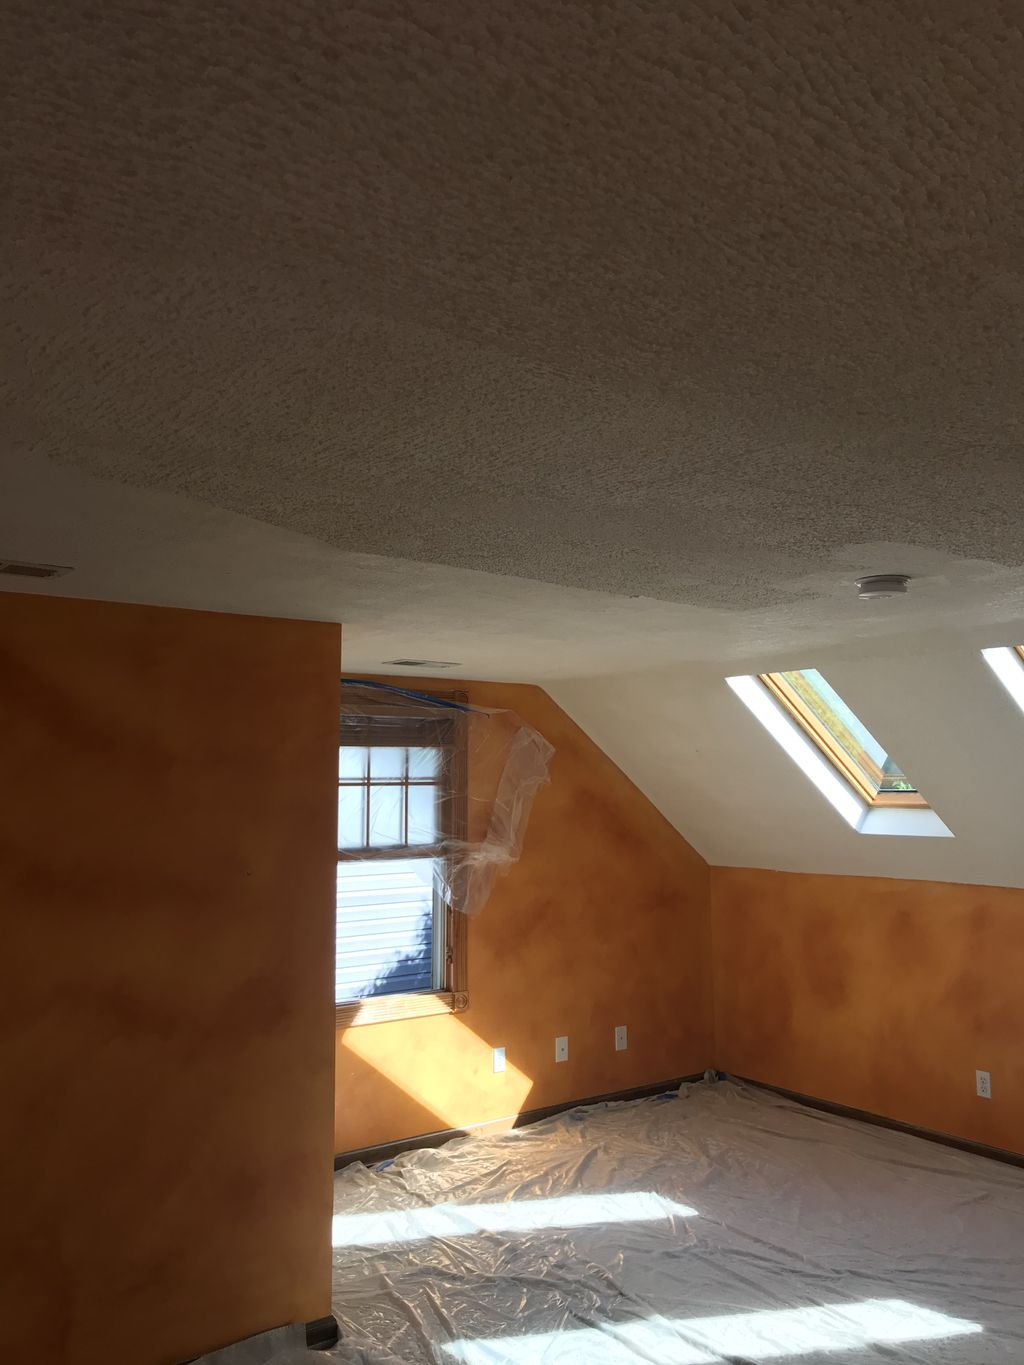 Popcorn ceiling cleaning it up to smooth ceiling